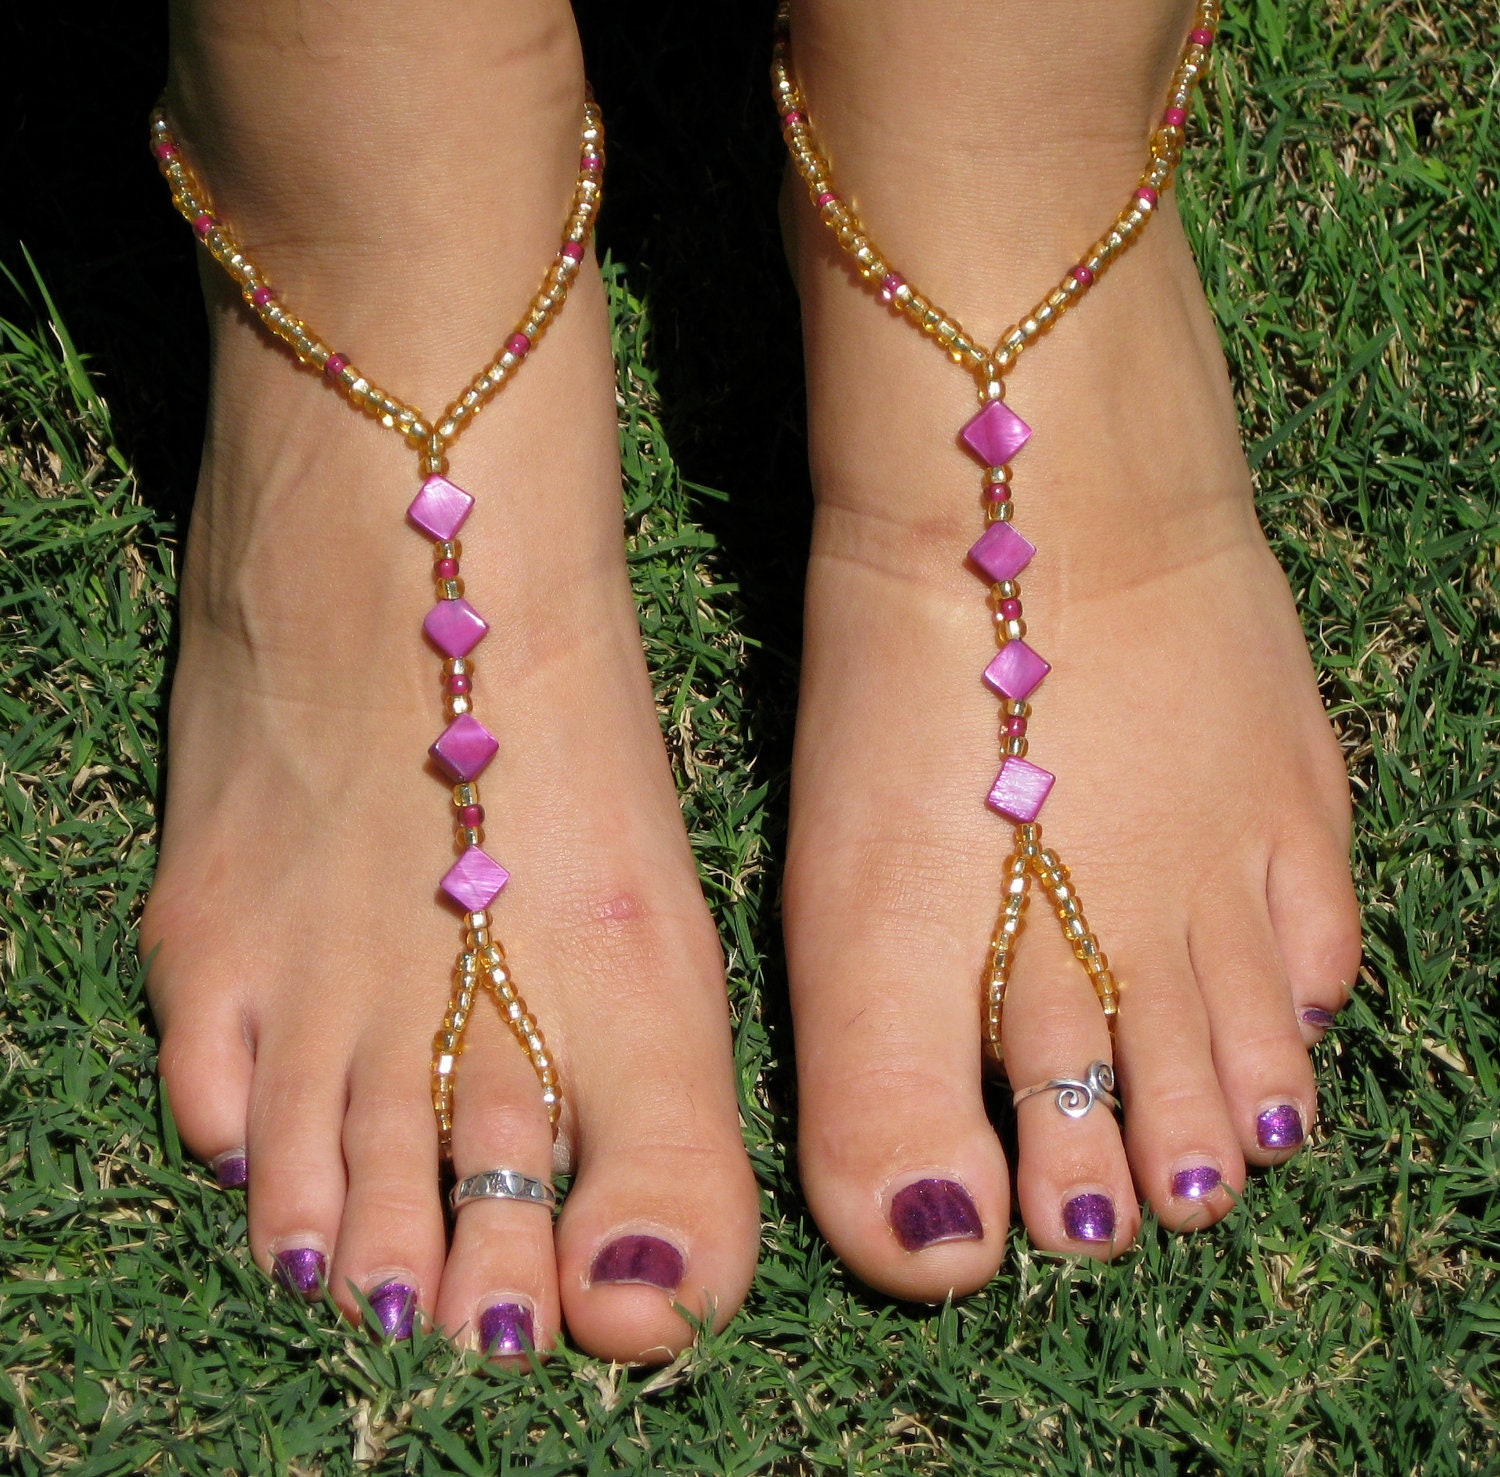 beads pin bracelet dangling anklet ankle filled bling jewelry gold